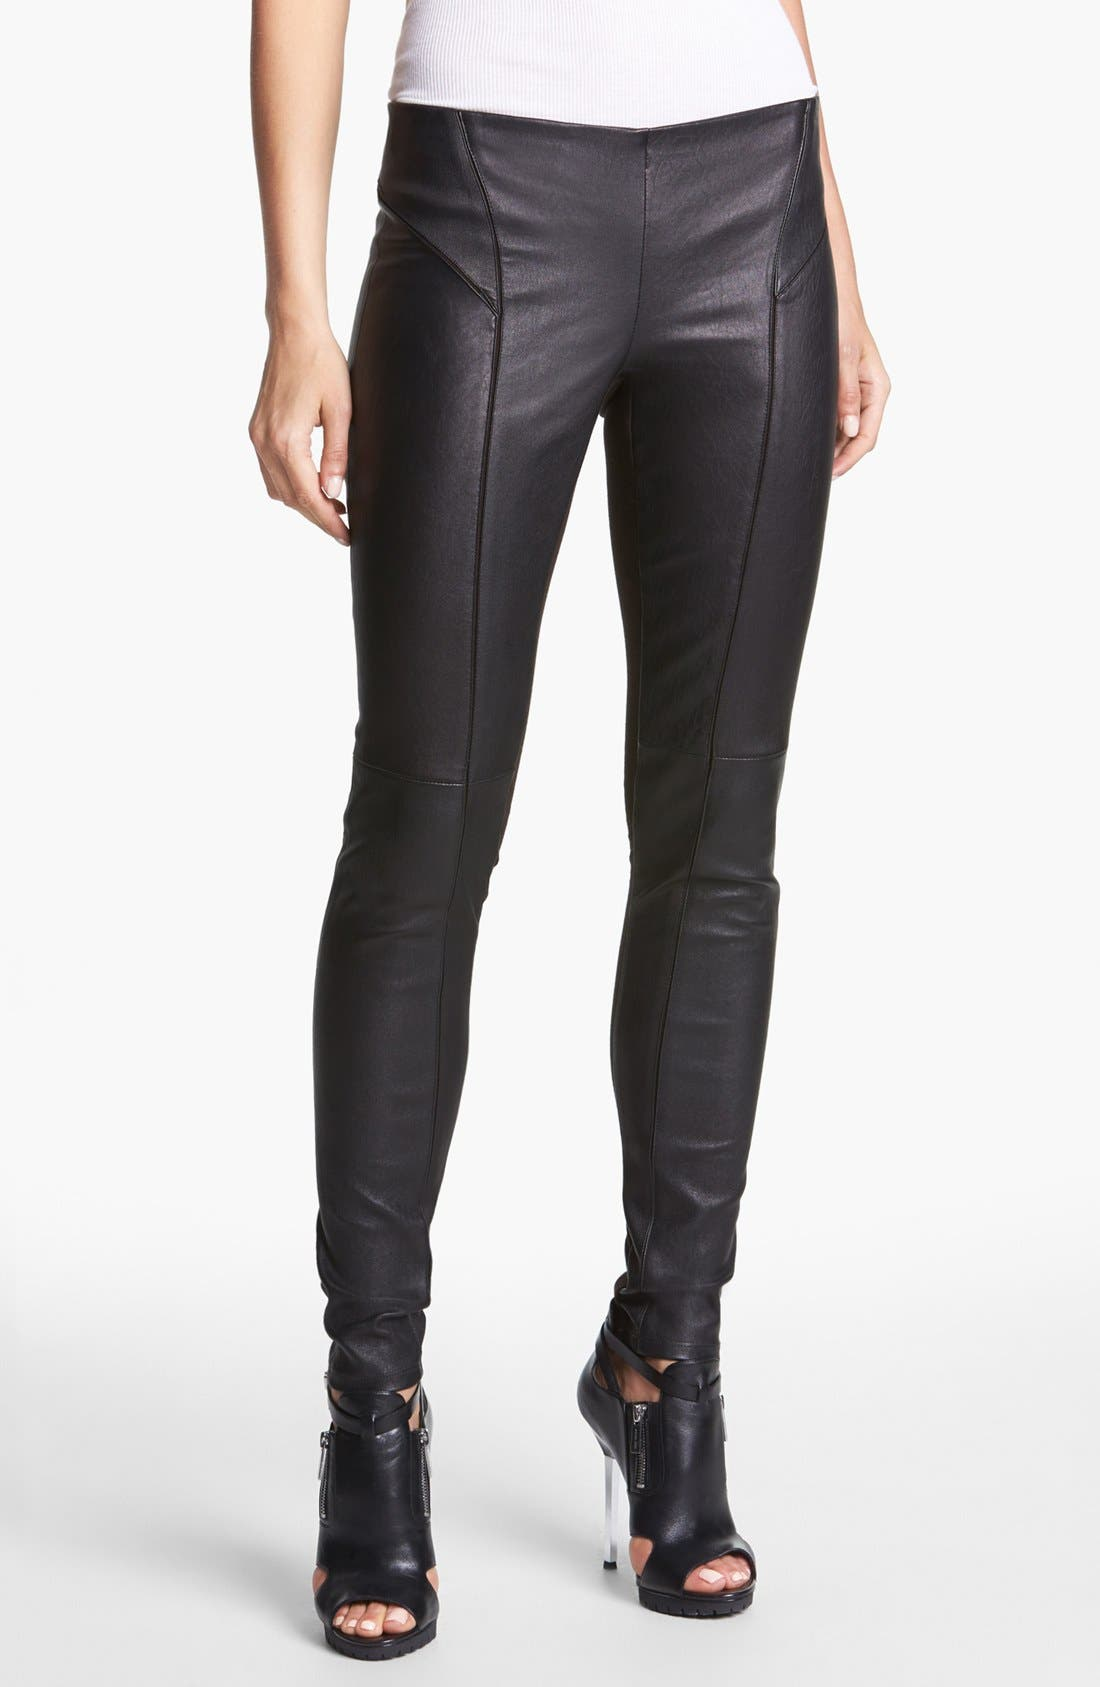 Alternate Image 1 Selected - Theory 'Miana' Leather & Knit Skinny Pants